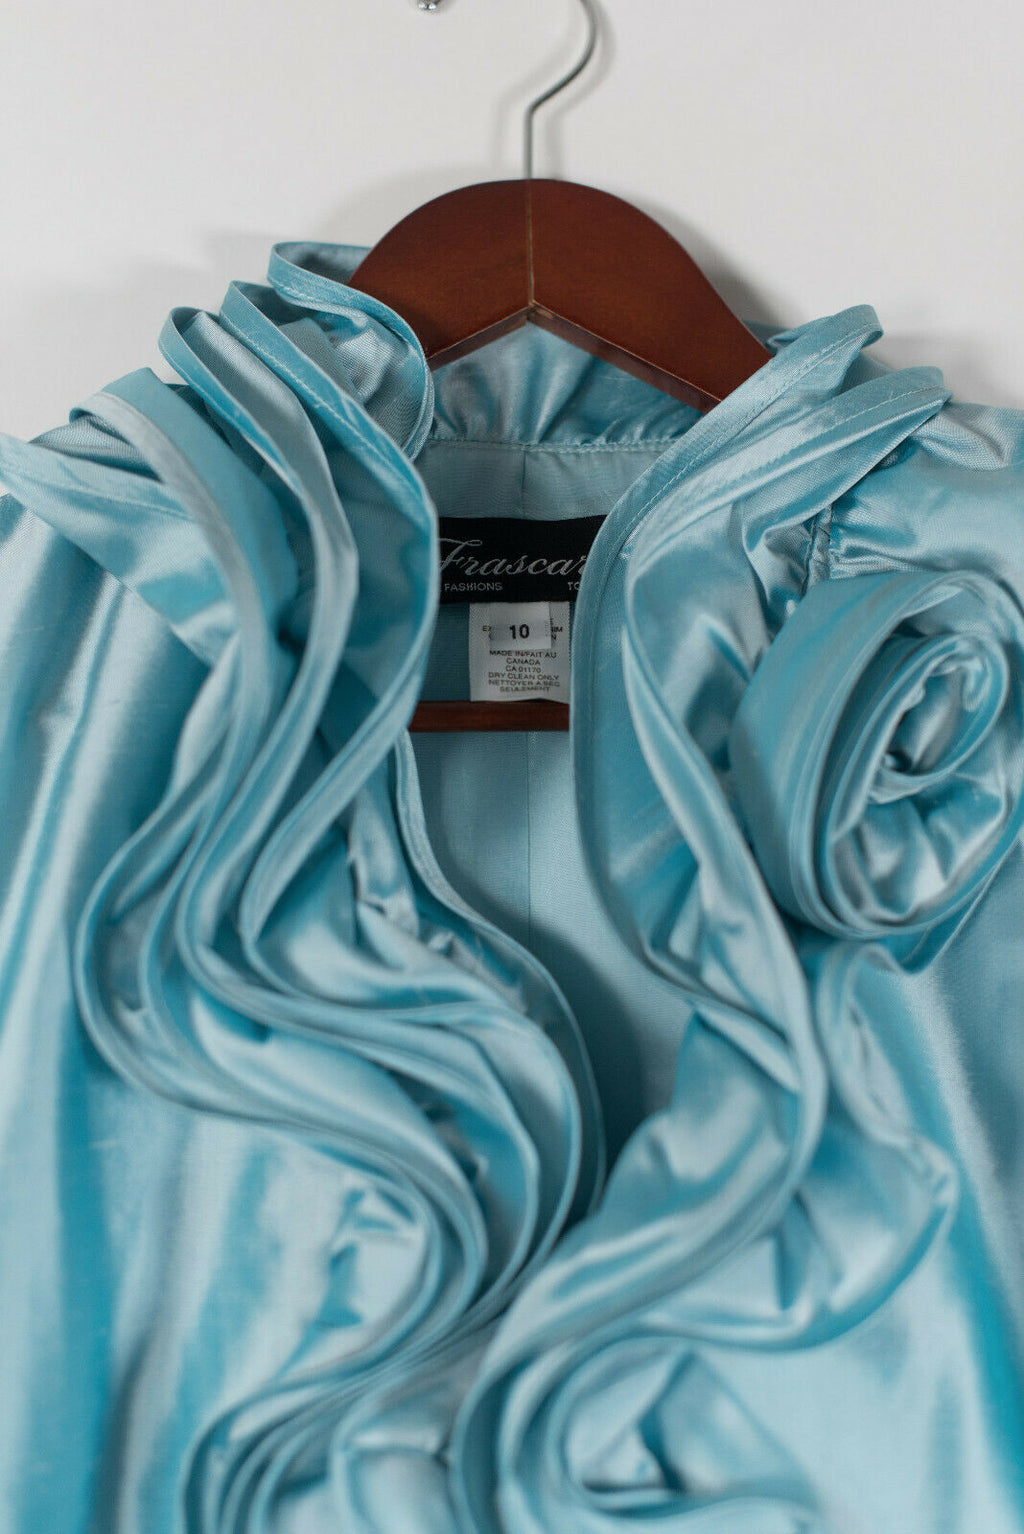 Frascara Womens Size 10 Medium Blue Jacket Ruffled Taffeta 2020 NWT MSRP $550